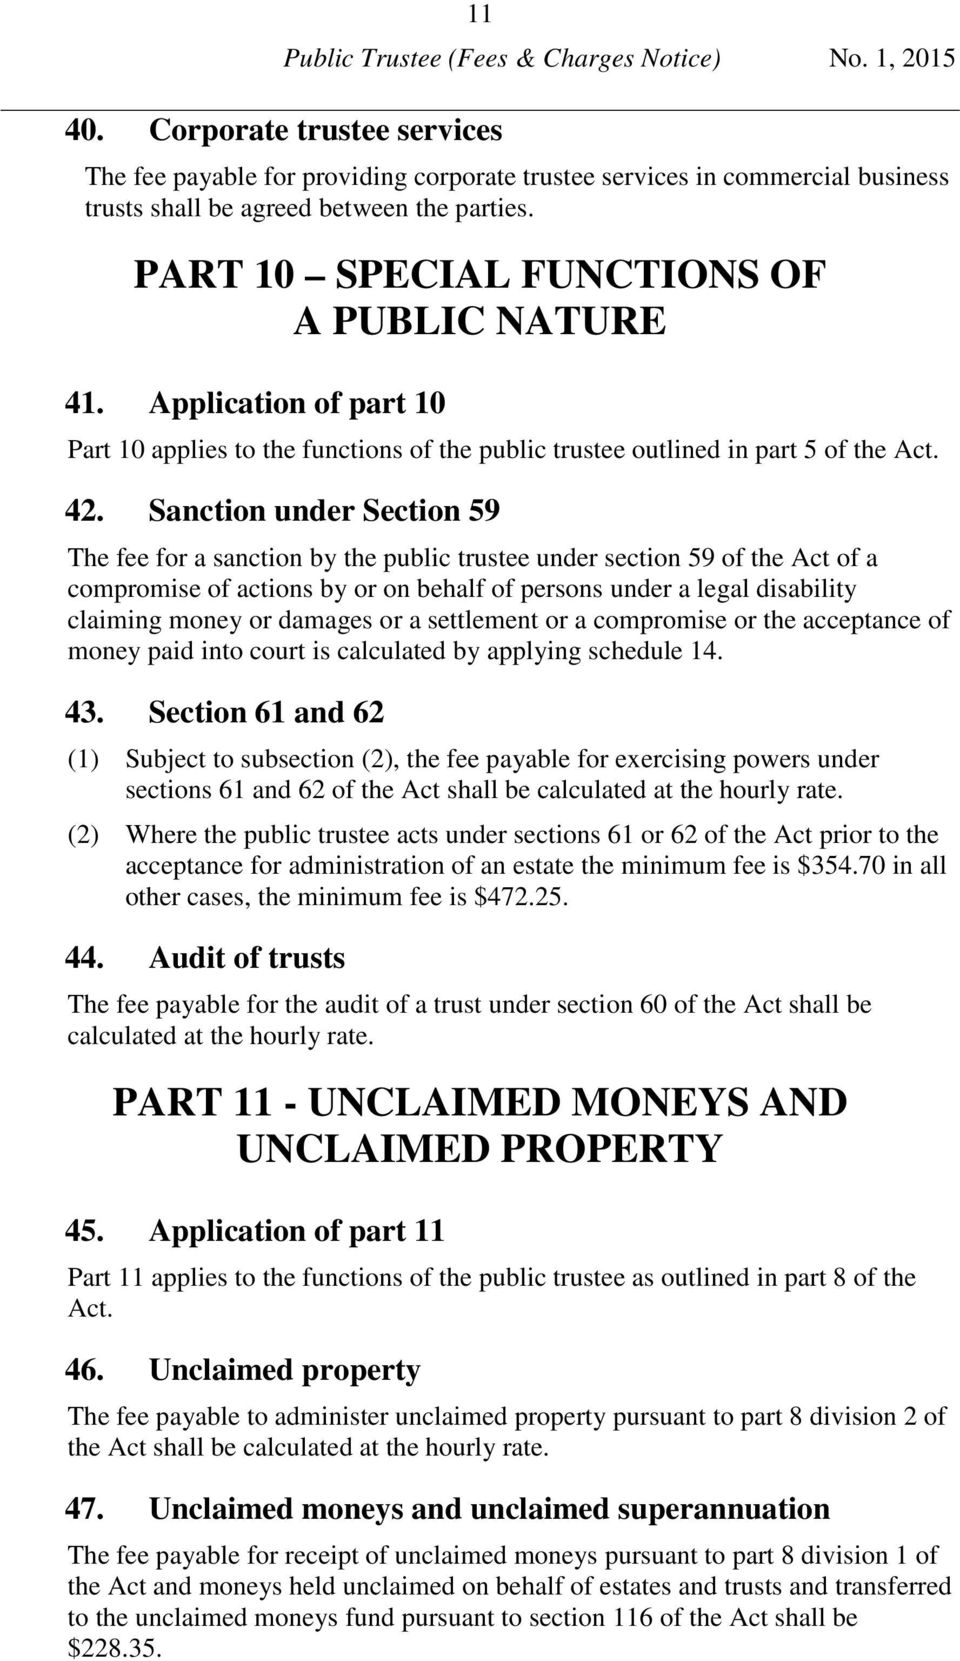 Sanction under Section 59 The fee for a sanction by the public trustee under section 59 of the Act of a compromise of actions by or on behalf of persons under a legal disability claiming money or